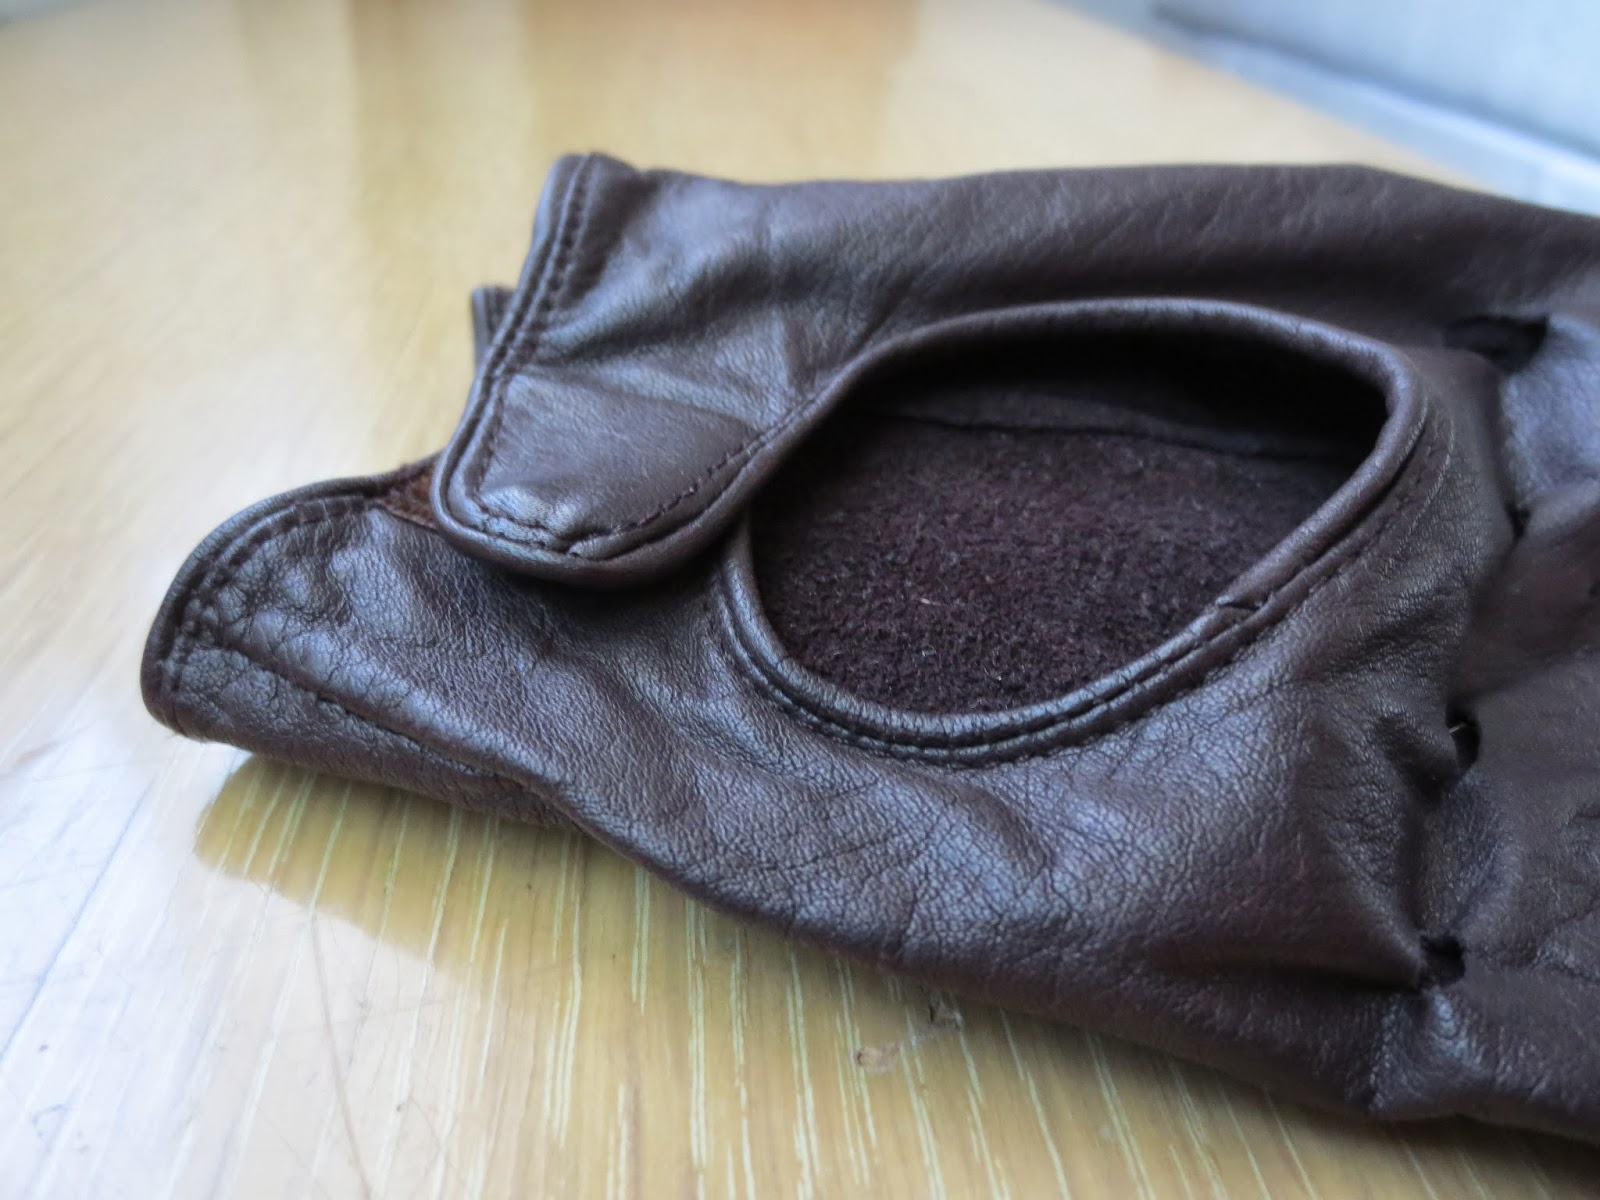 1960s brown leather driving gloves via Brentwood Lane